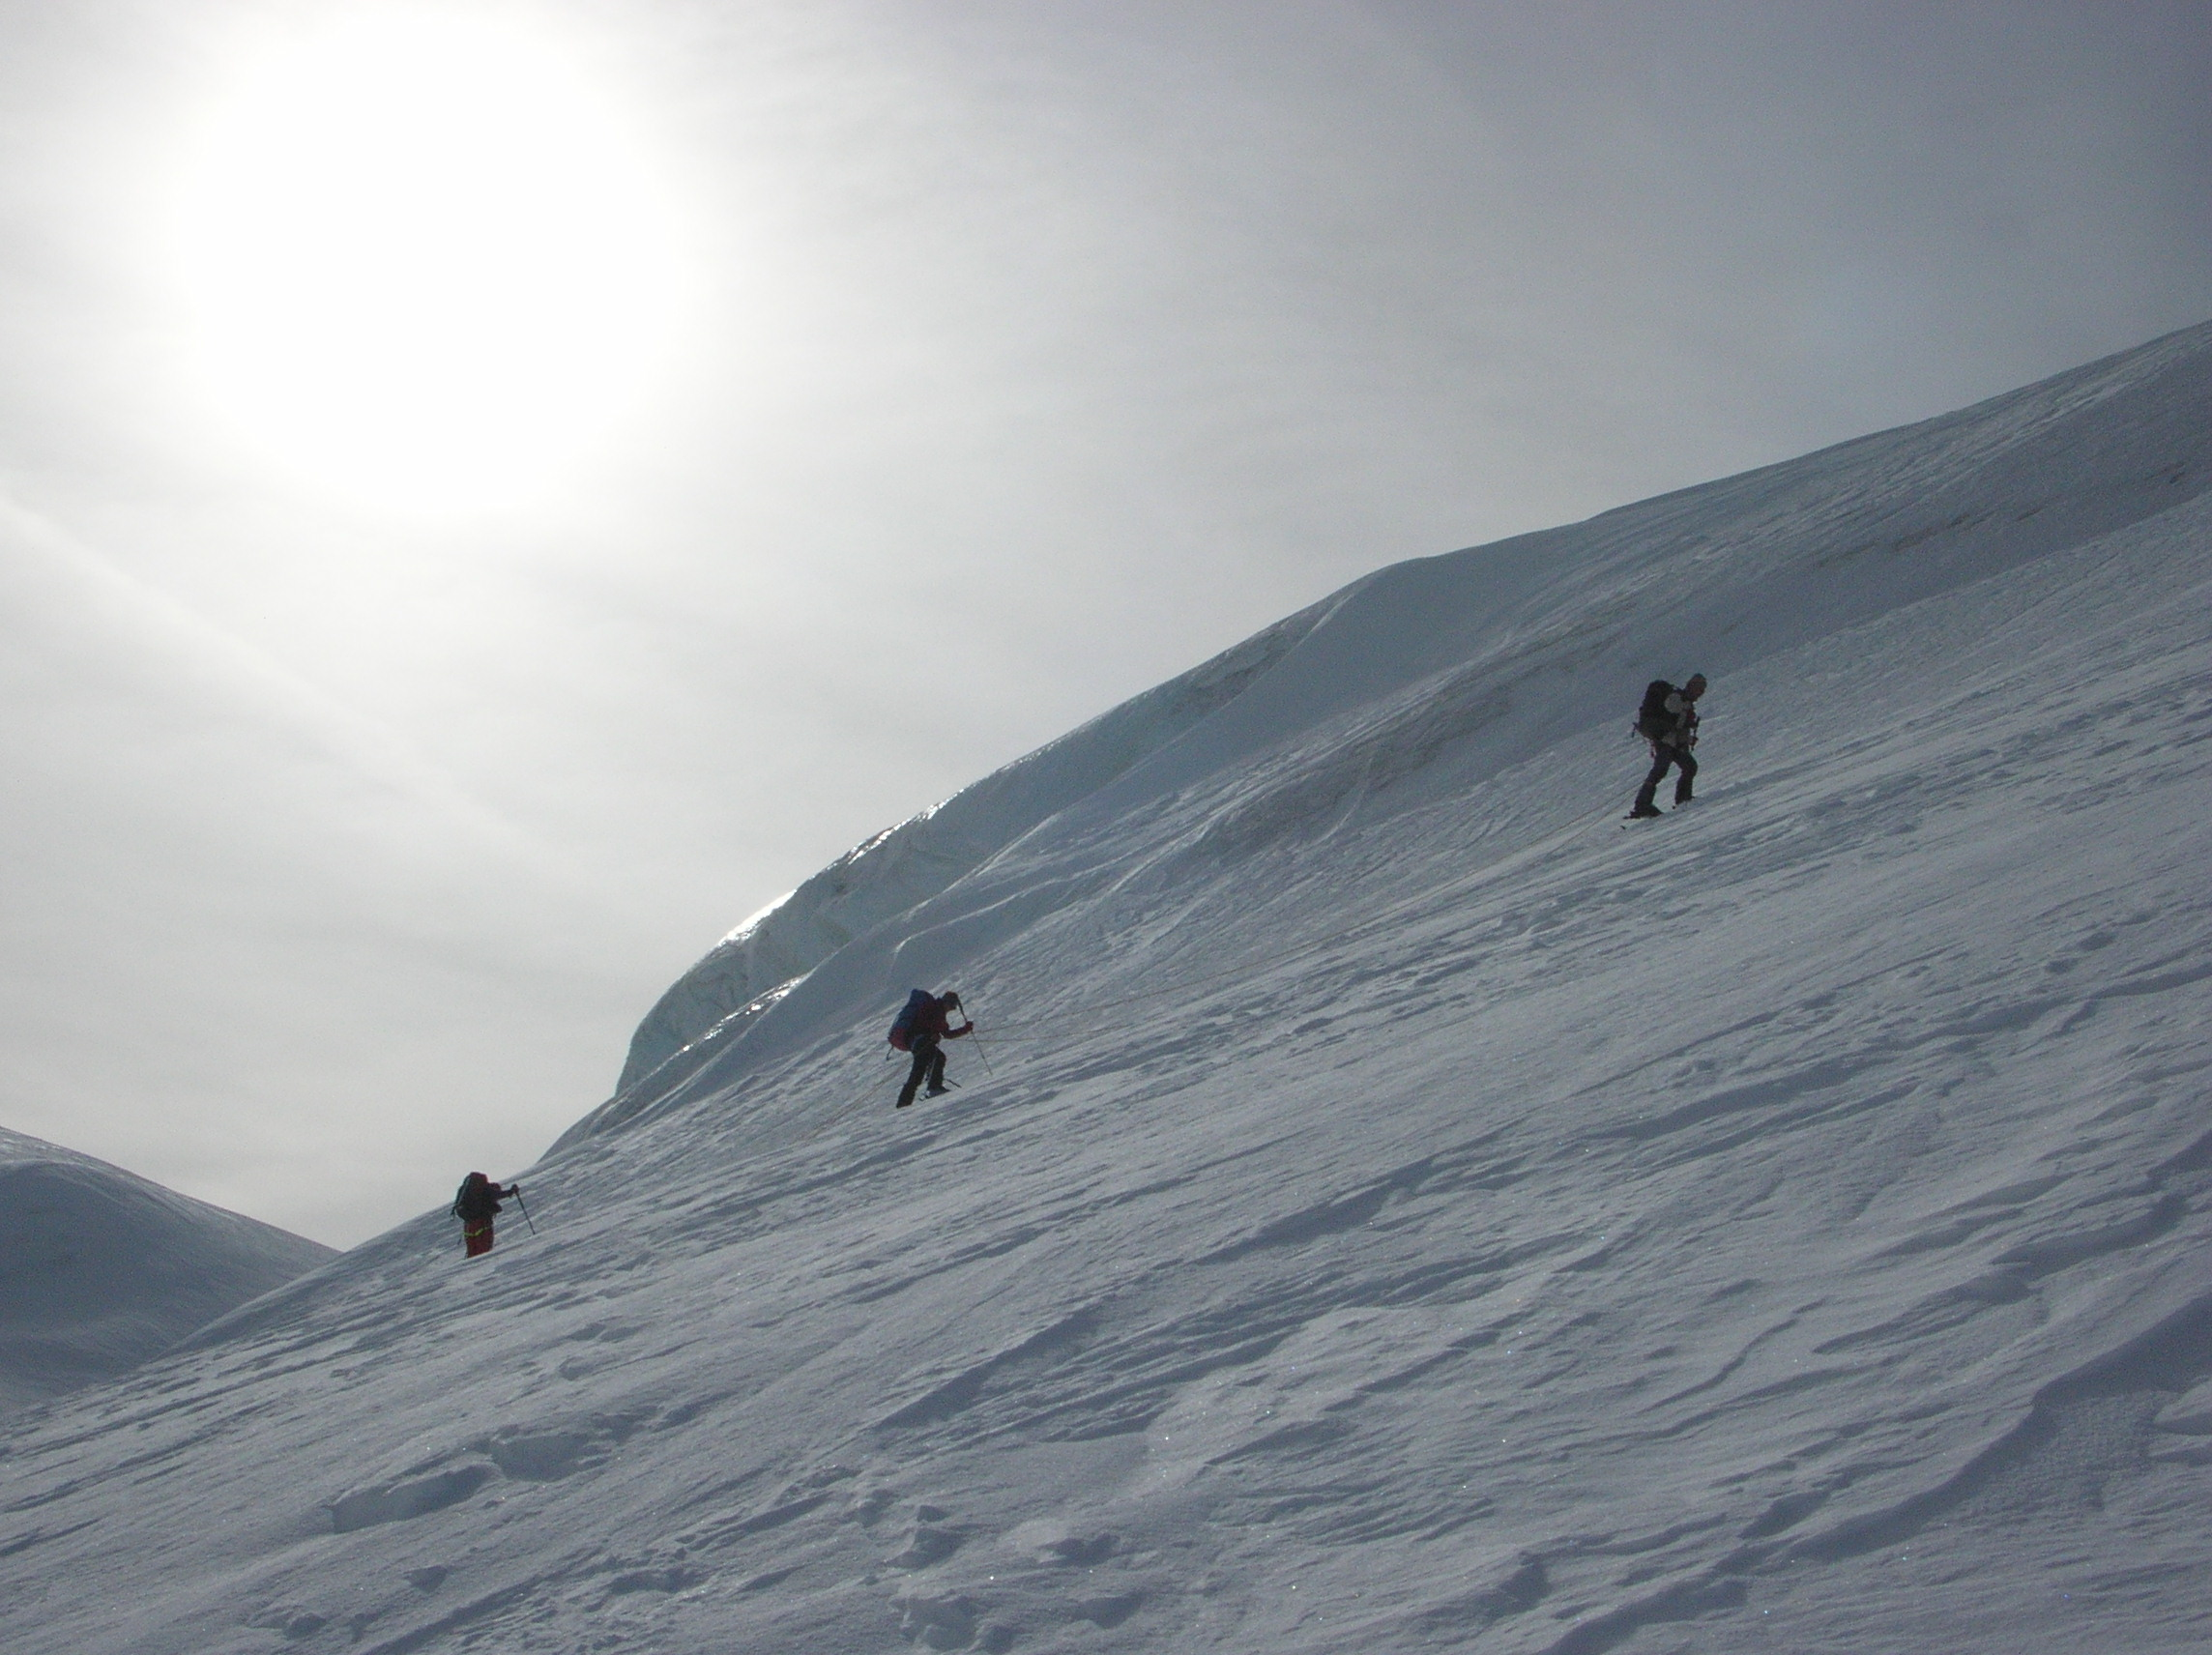 Approaching the summit of the Pigne d'Arolla